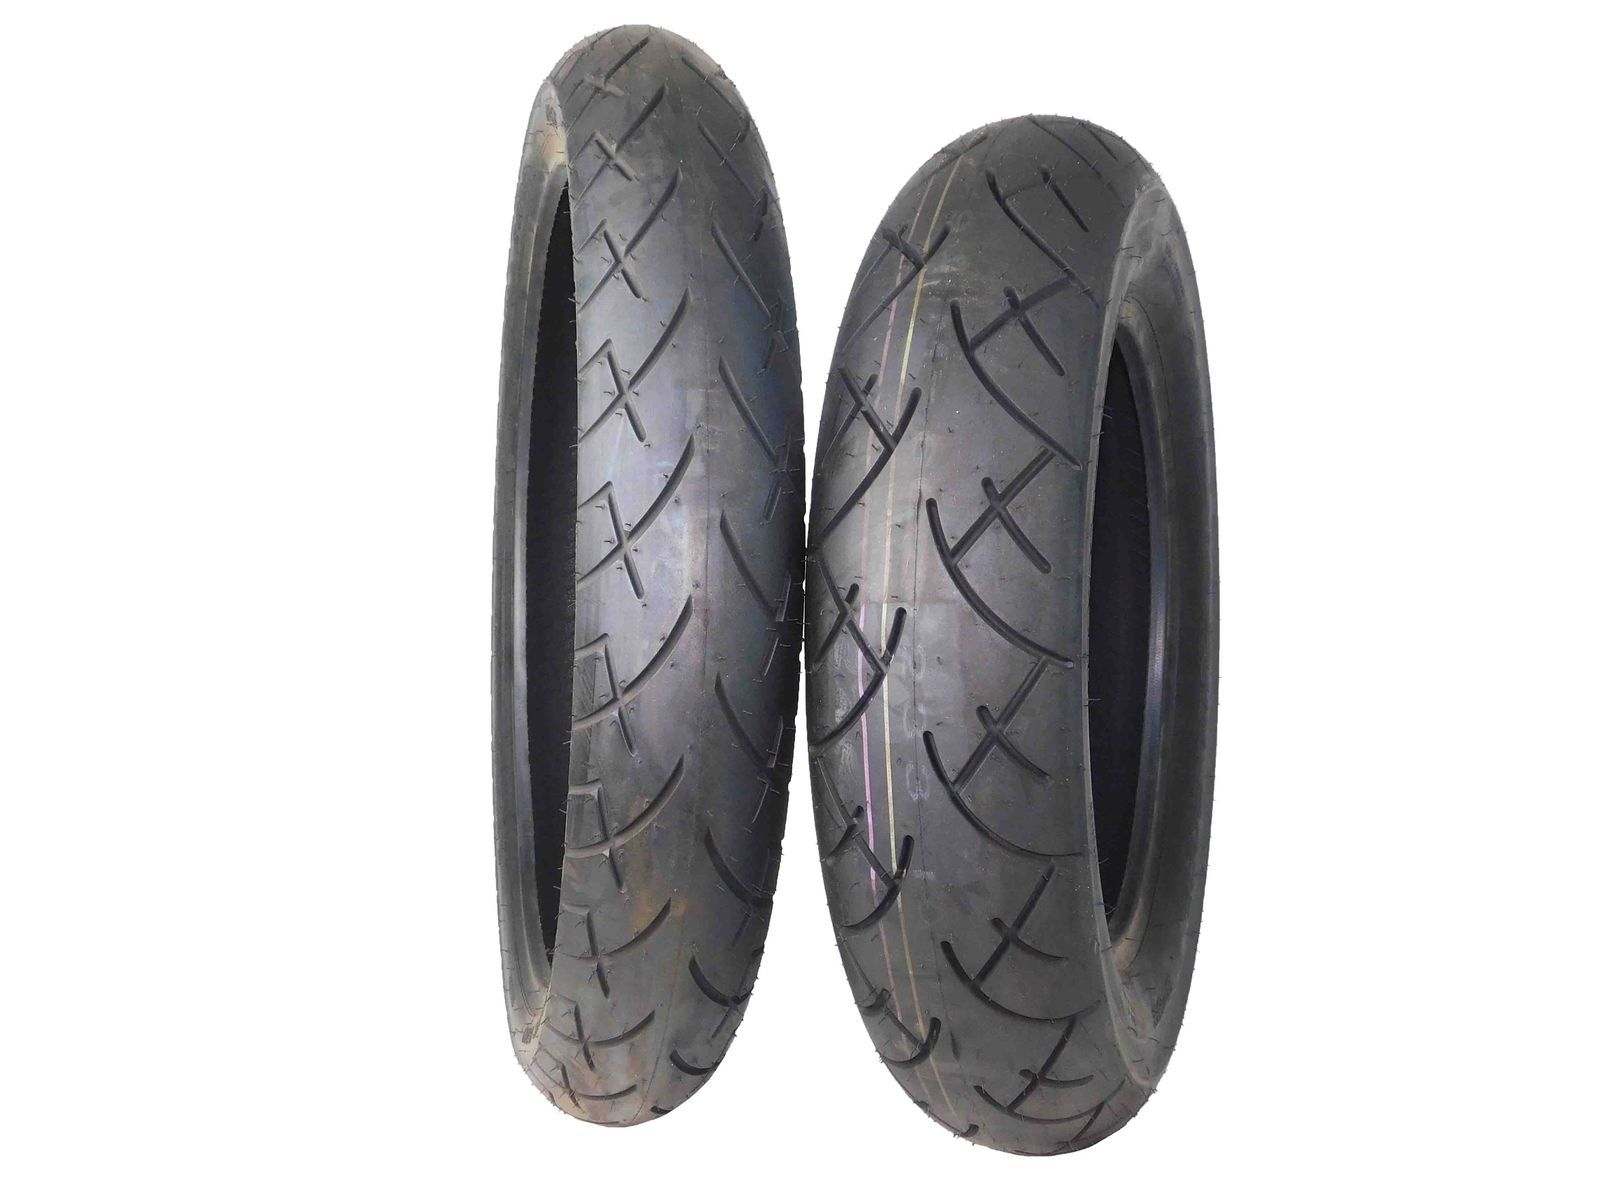 Full-Bore-120-70-21-Front-150-90-15-Rear-Set-Cruiser-Motorcycle-Tires-image-1